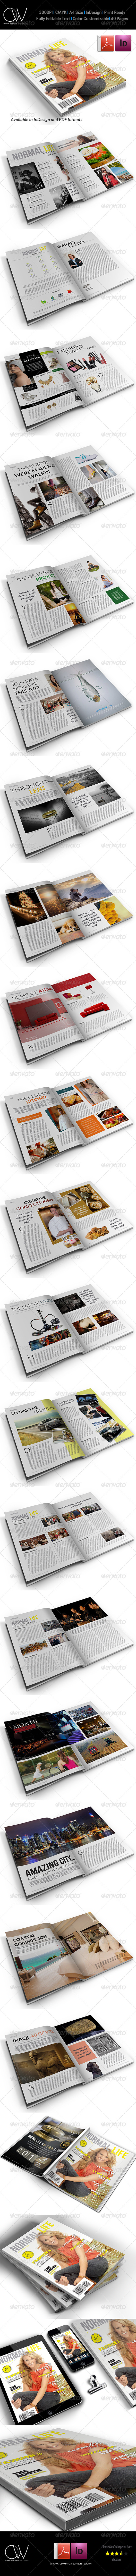 GraphicRiver Normal Life Magazine Template 40 Pages 7949788